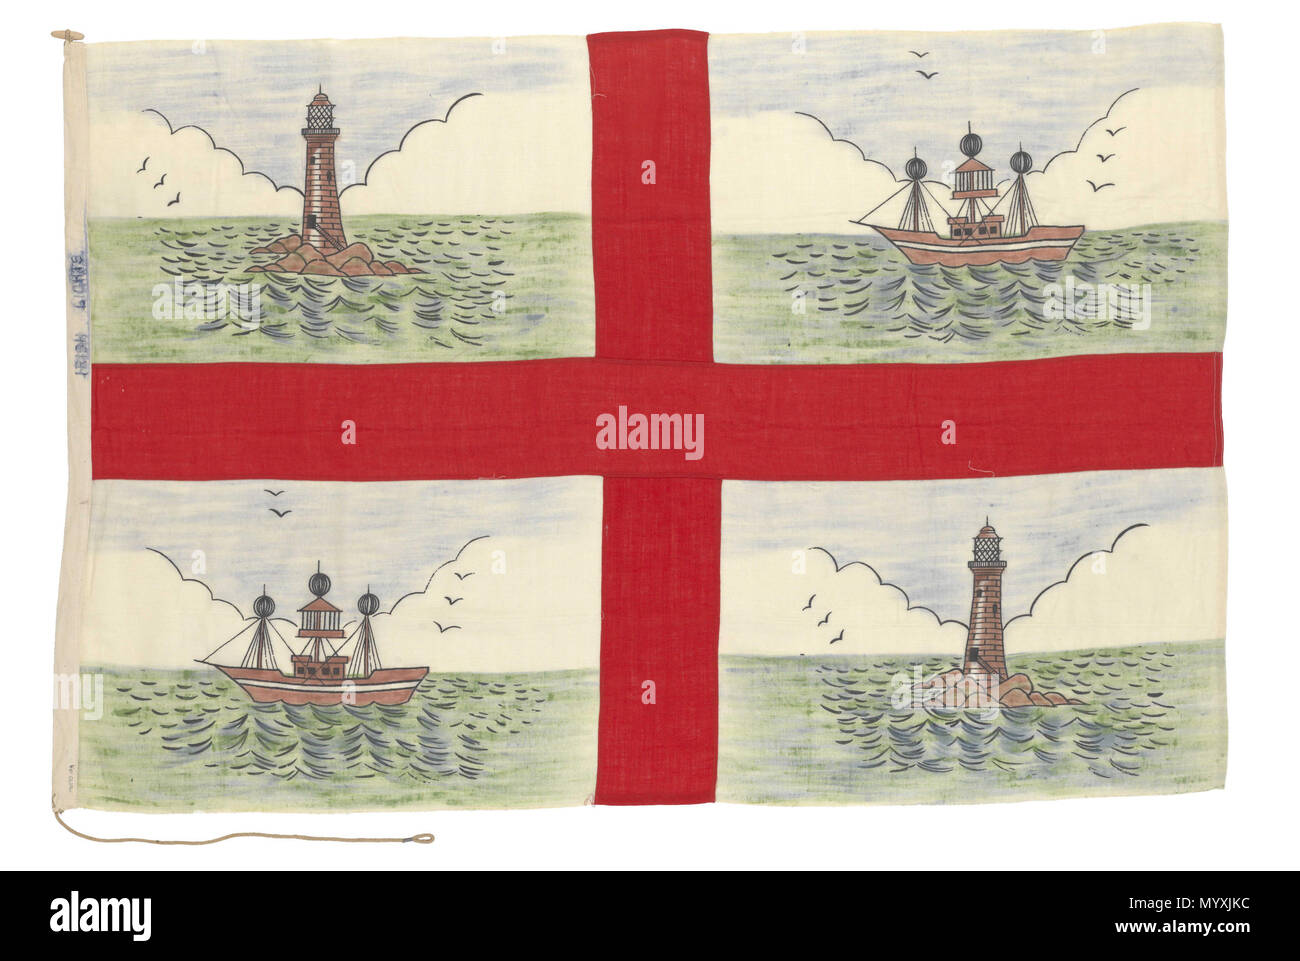 Which Island S Flag Has The St George S Cross On It